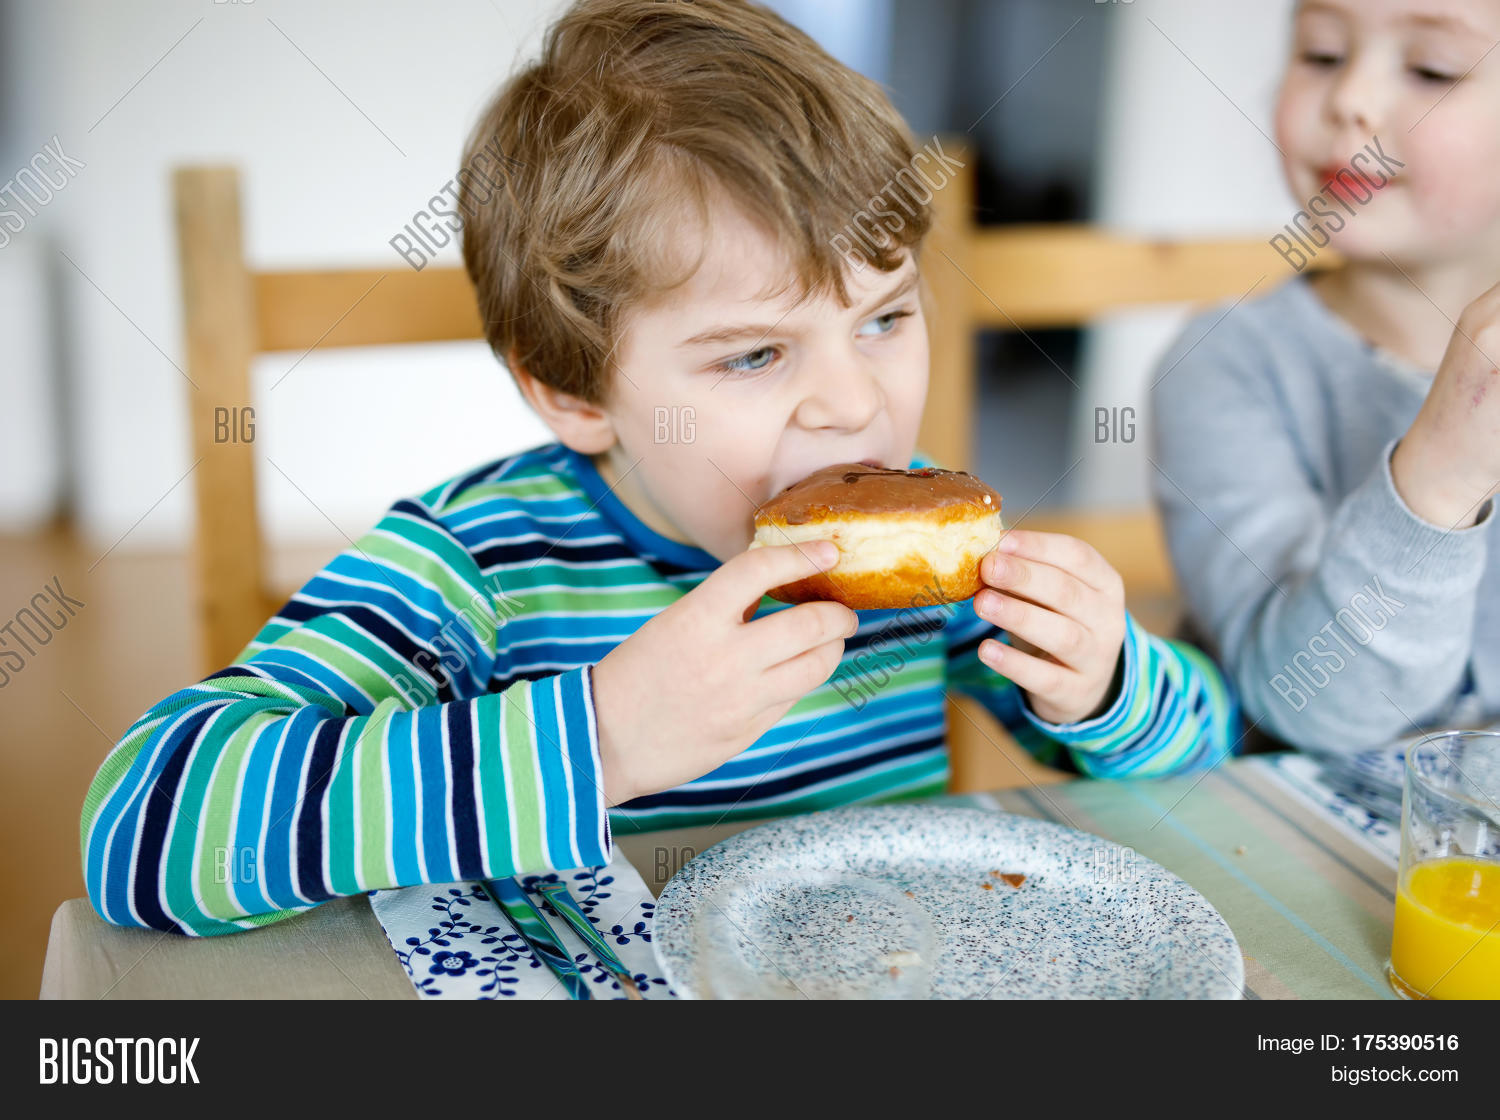 Adorable Little Image & Photo (Free Trial) | Bigstock